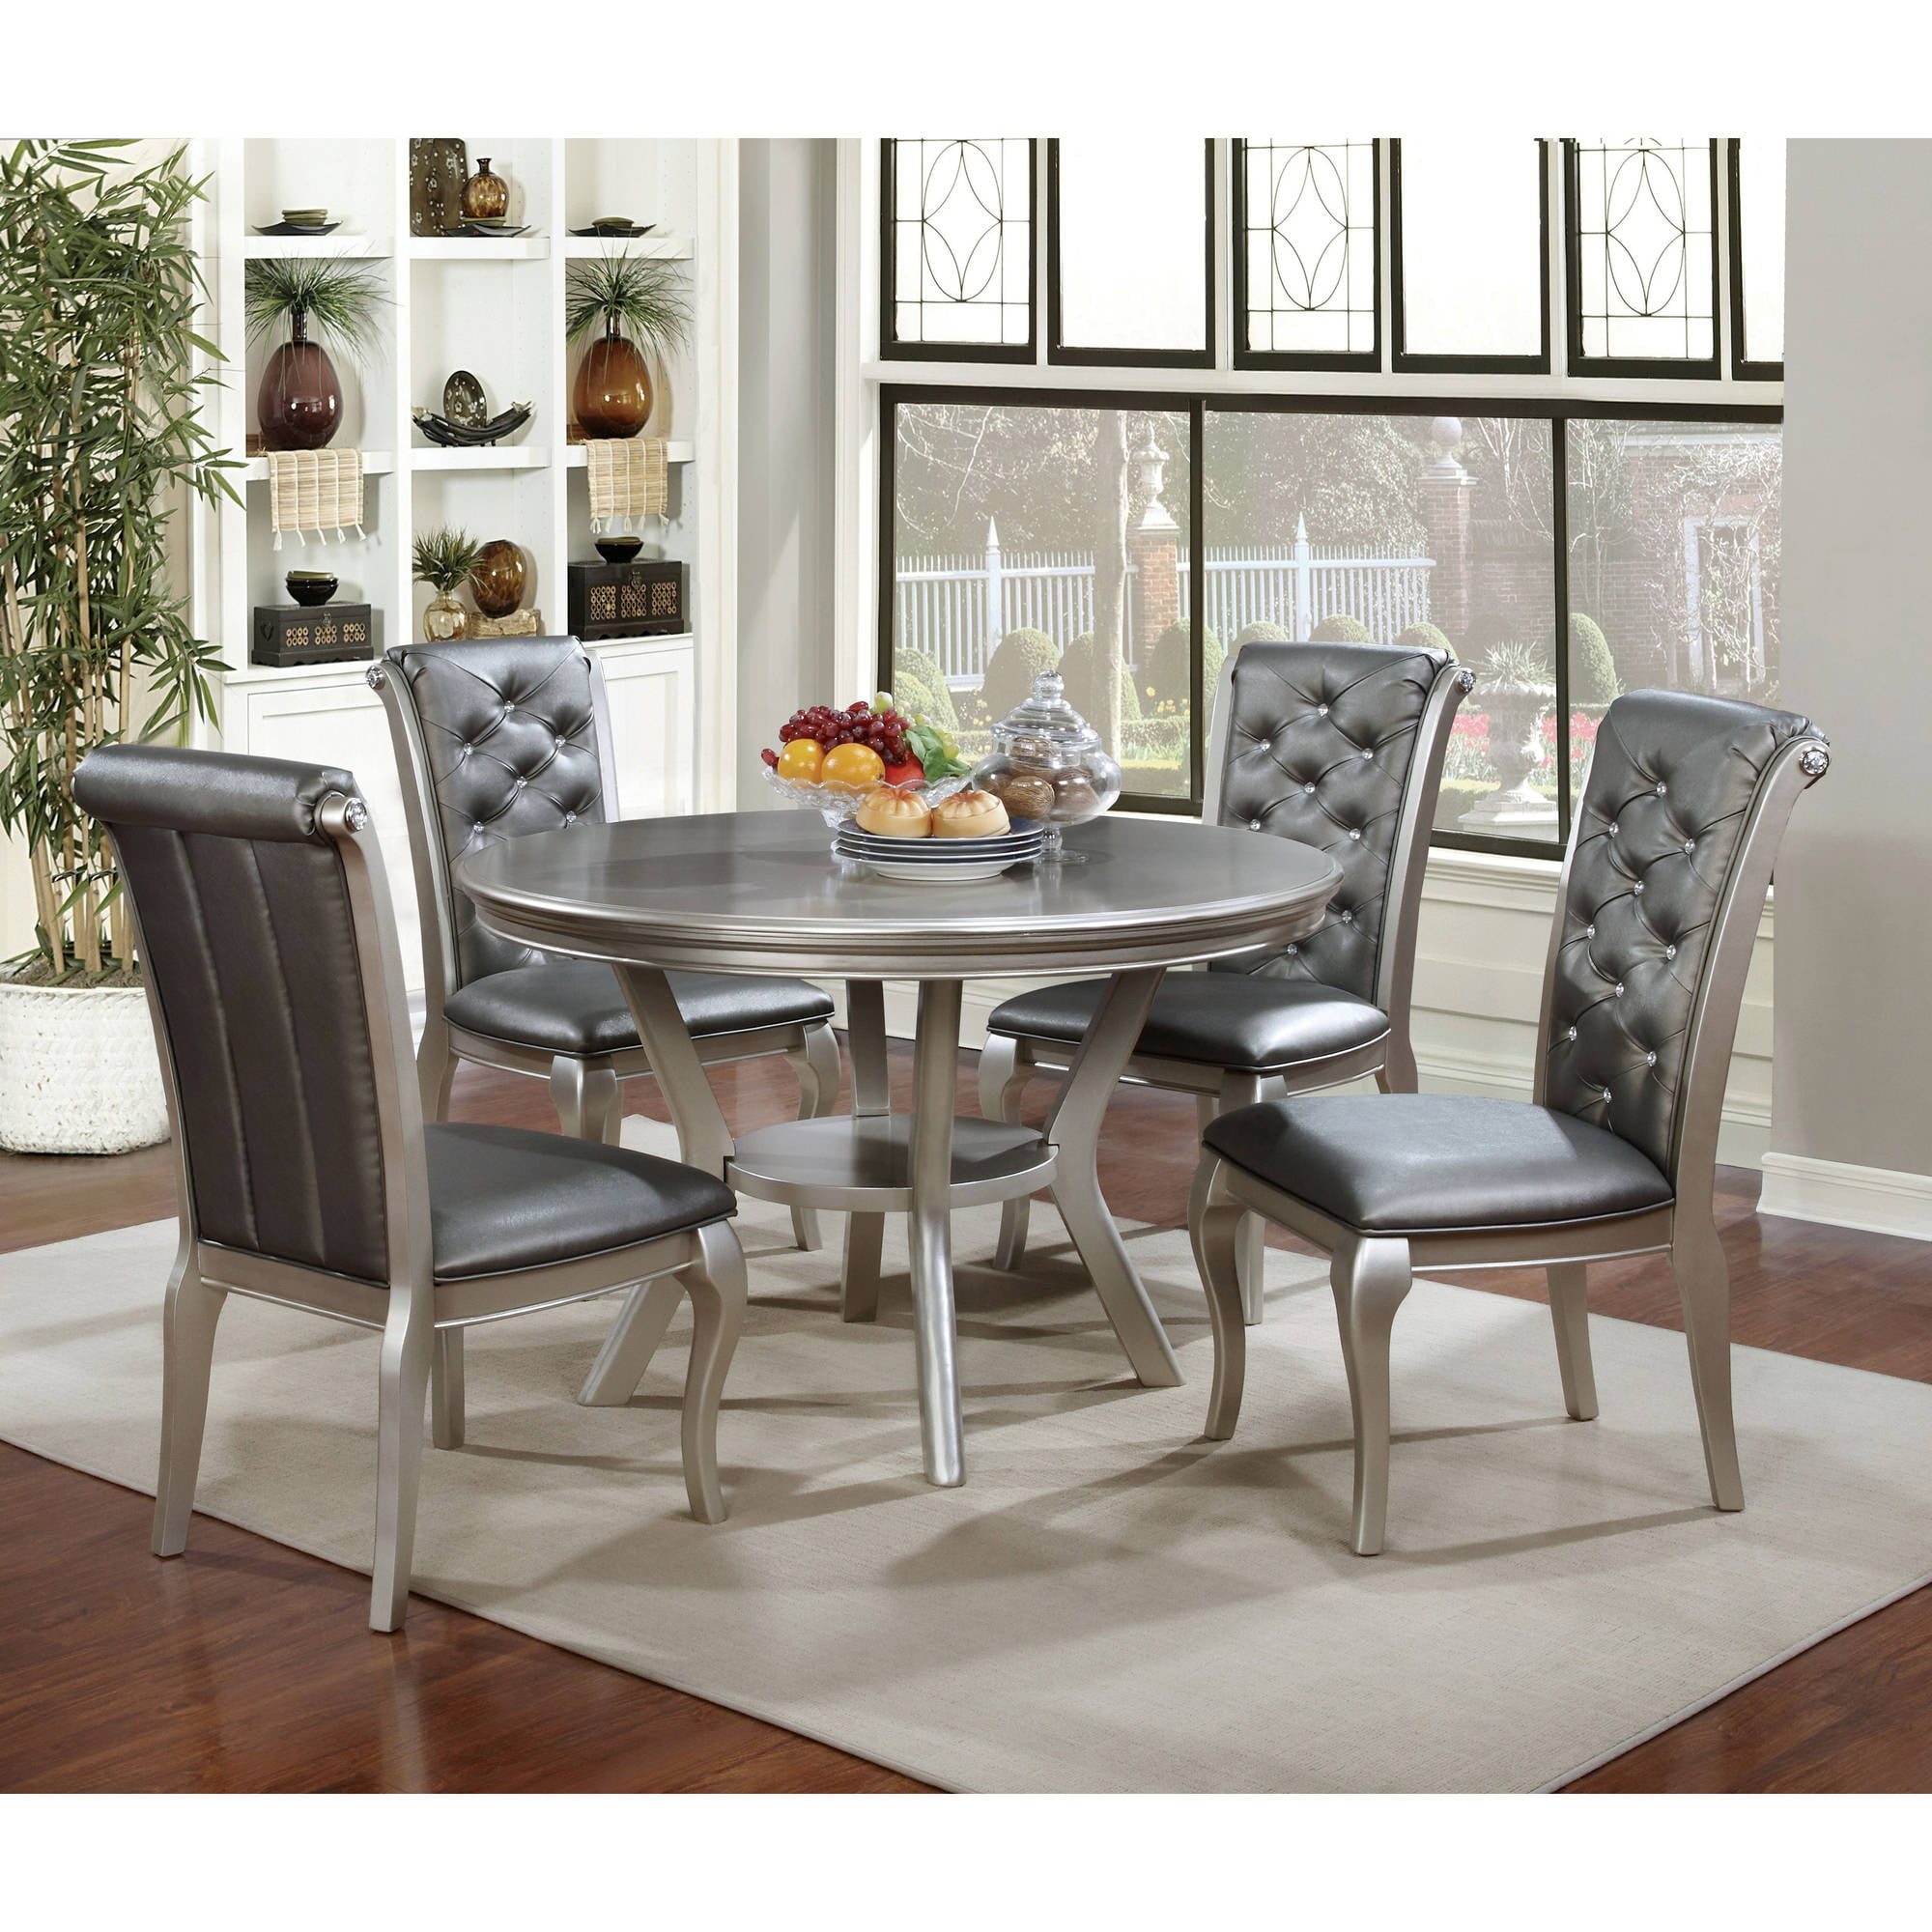 Contemporary Dining Table Chairs: Furniture Of America Contemporary Round 5 Piece Dining Set